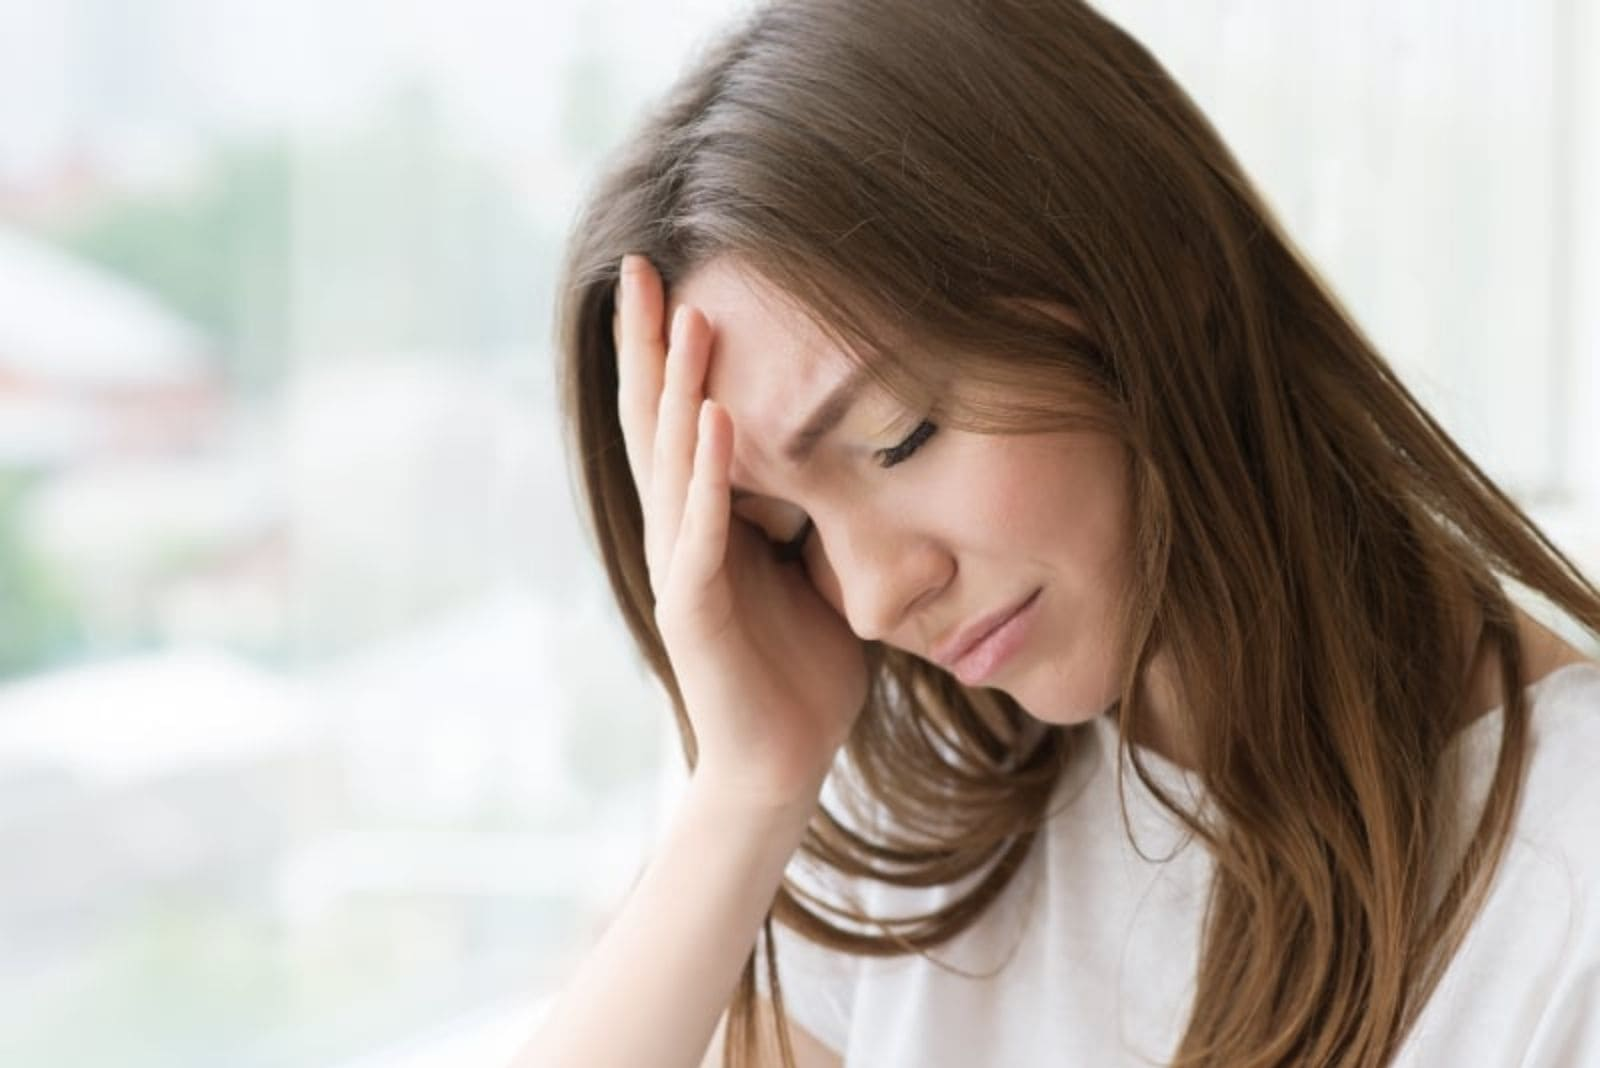 woman sad at home thinking about break up